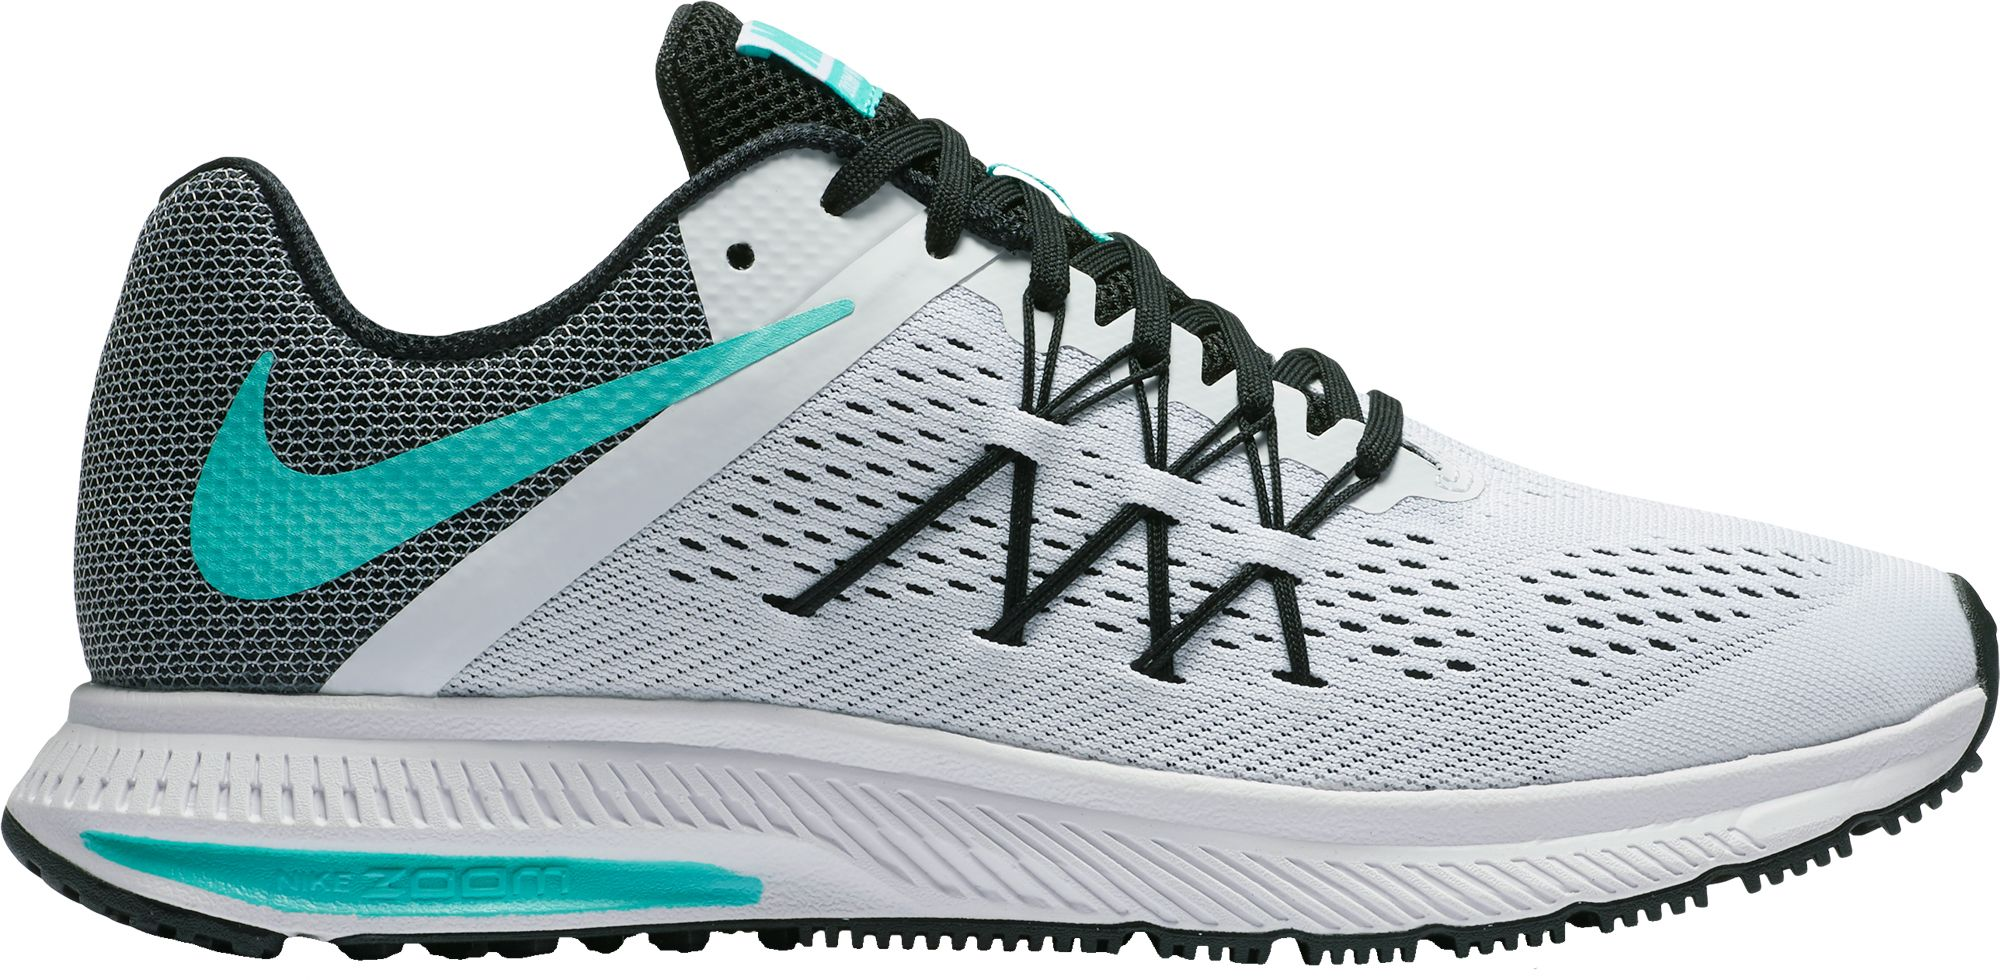 Womens Nike running shoes product image · nike womenu0027s zoom winflo 3 running shoes XOLDZON